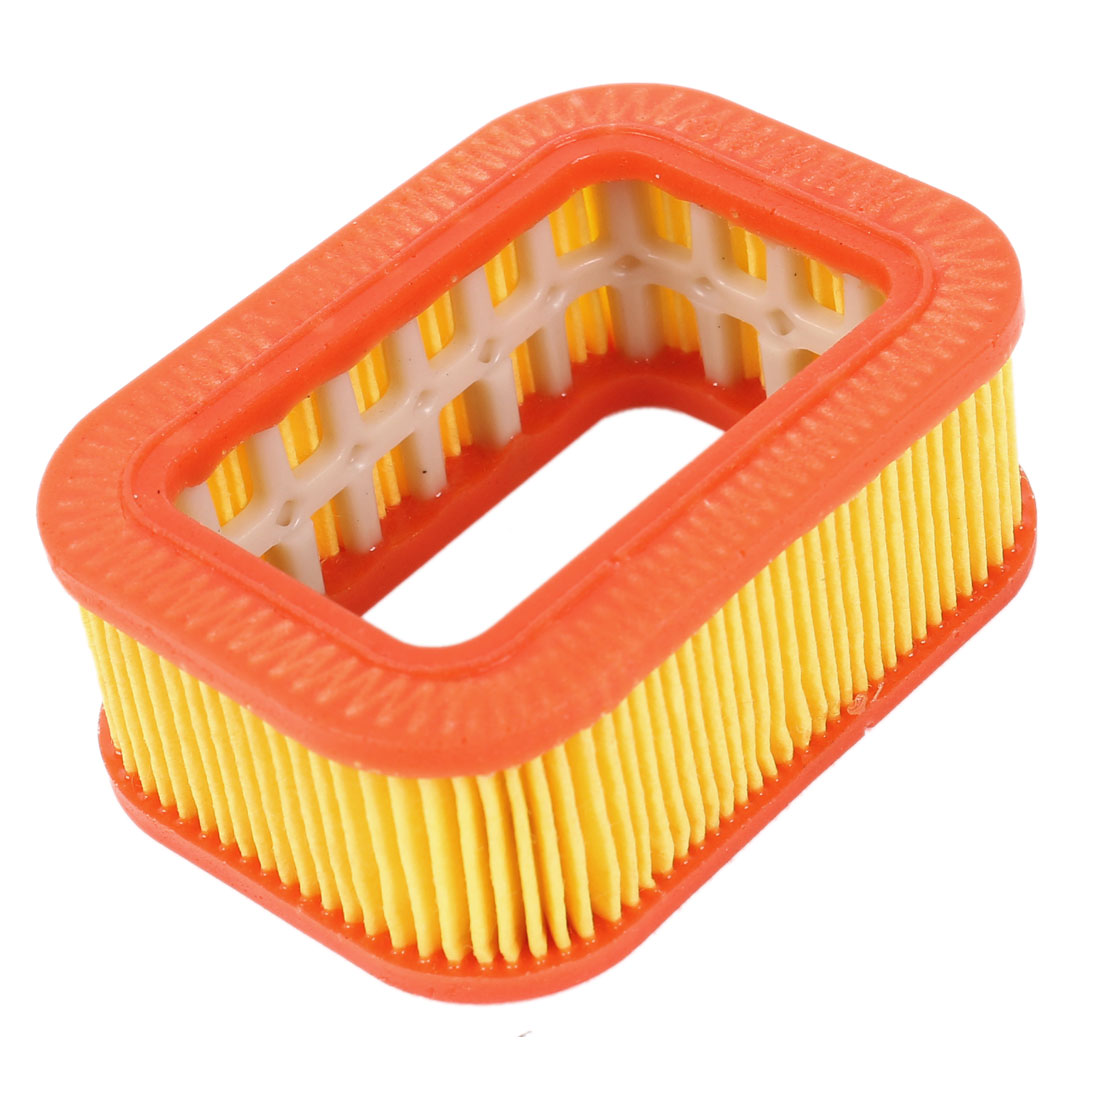 "2.9"" x 2.1"" x 1.1"" Paper Air Filter Cleaner for 52/58 Chainsaw"